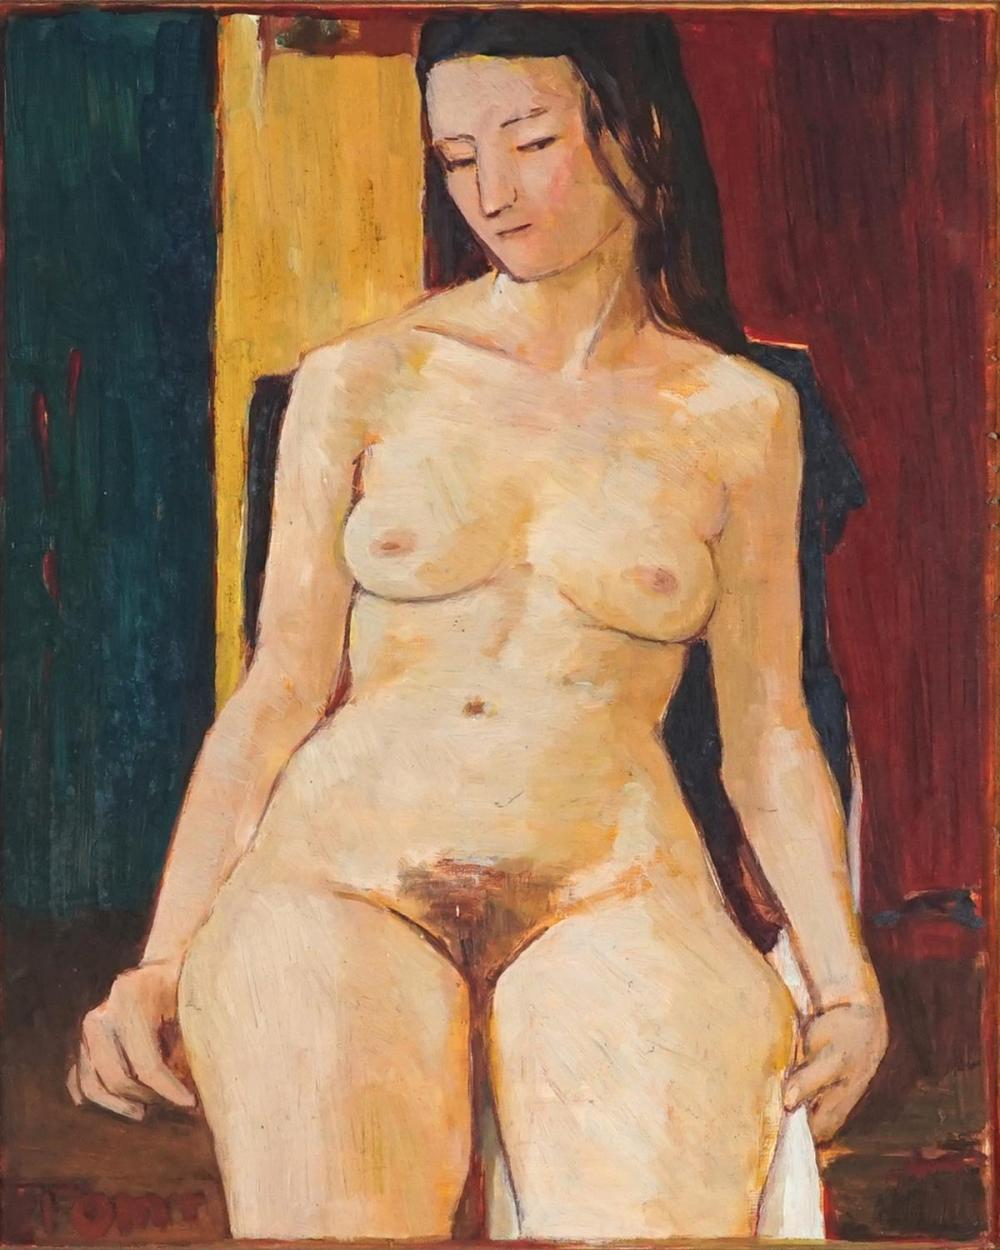 Tom Thompson (1923 - ) - Nude Study 1984 50 x 40.5cm